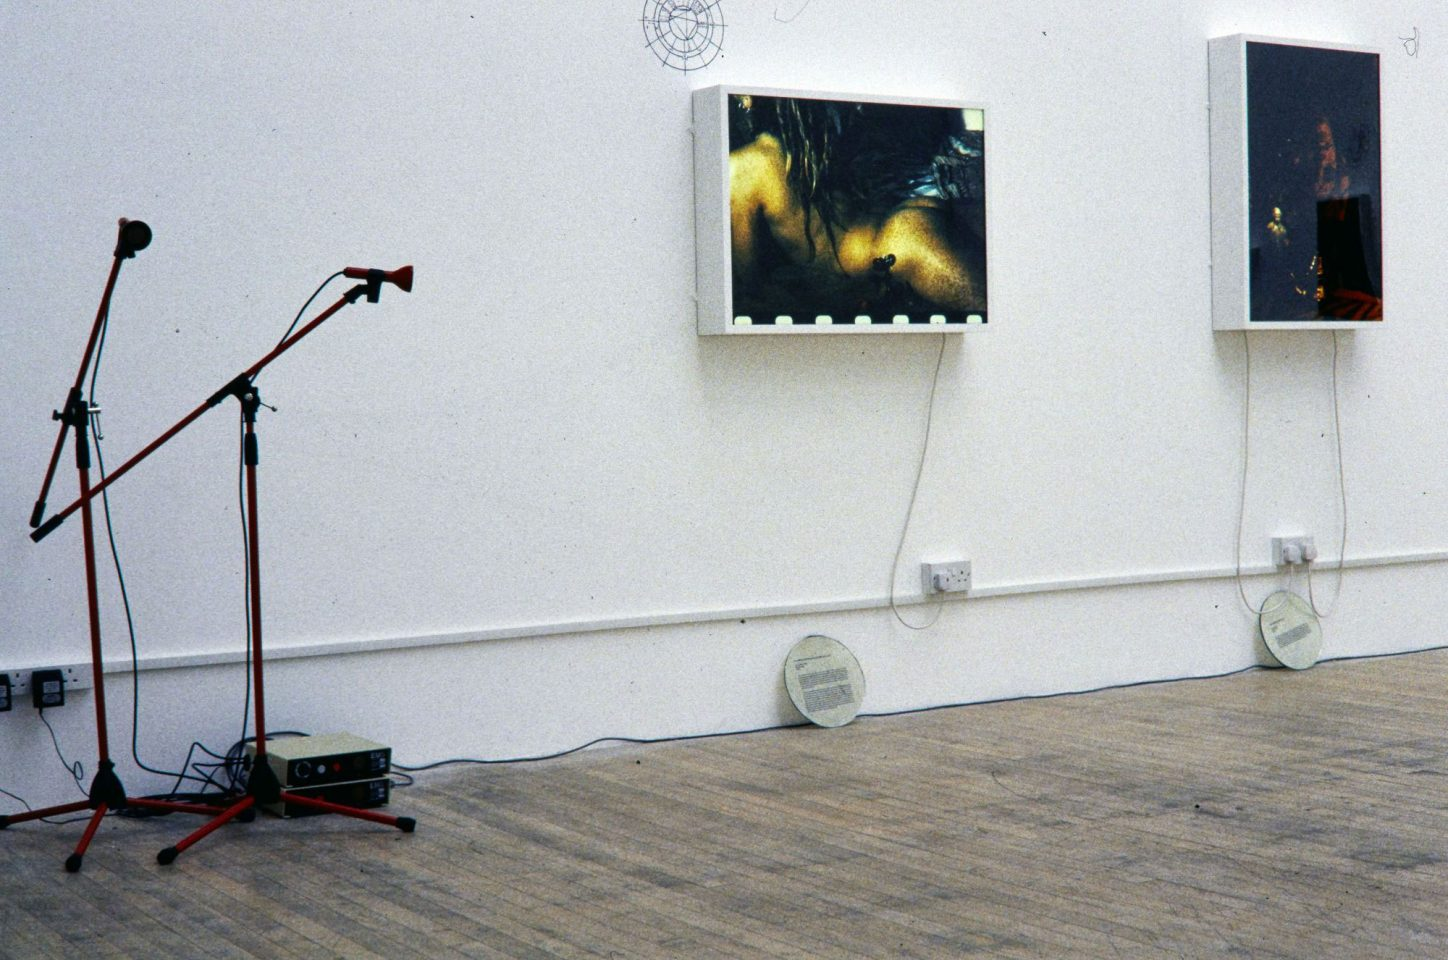 Installation view from Shaheen Merali's 1994 exhibtion Channels, Echoes and Empty Chairs